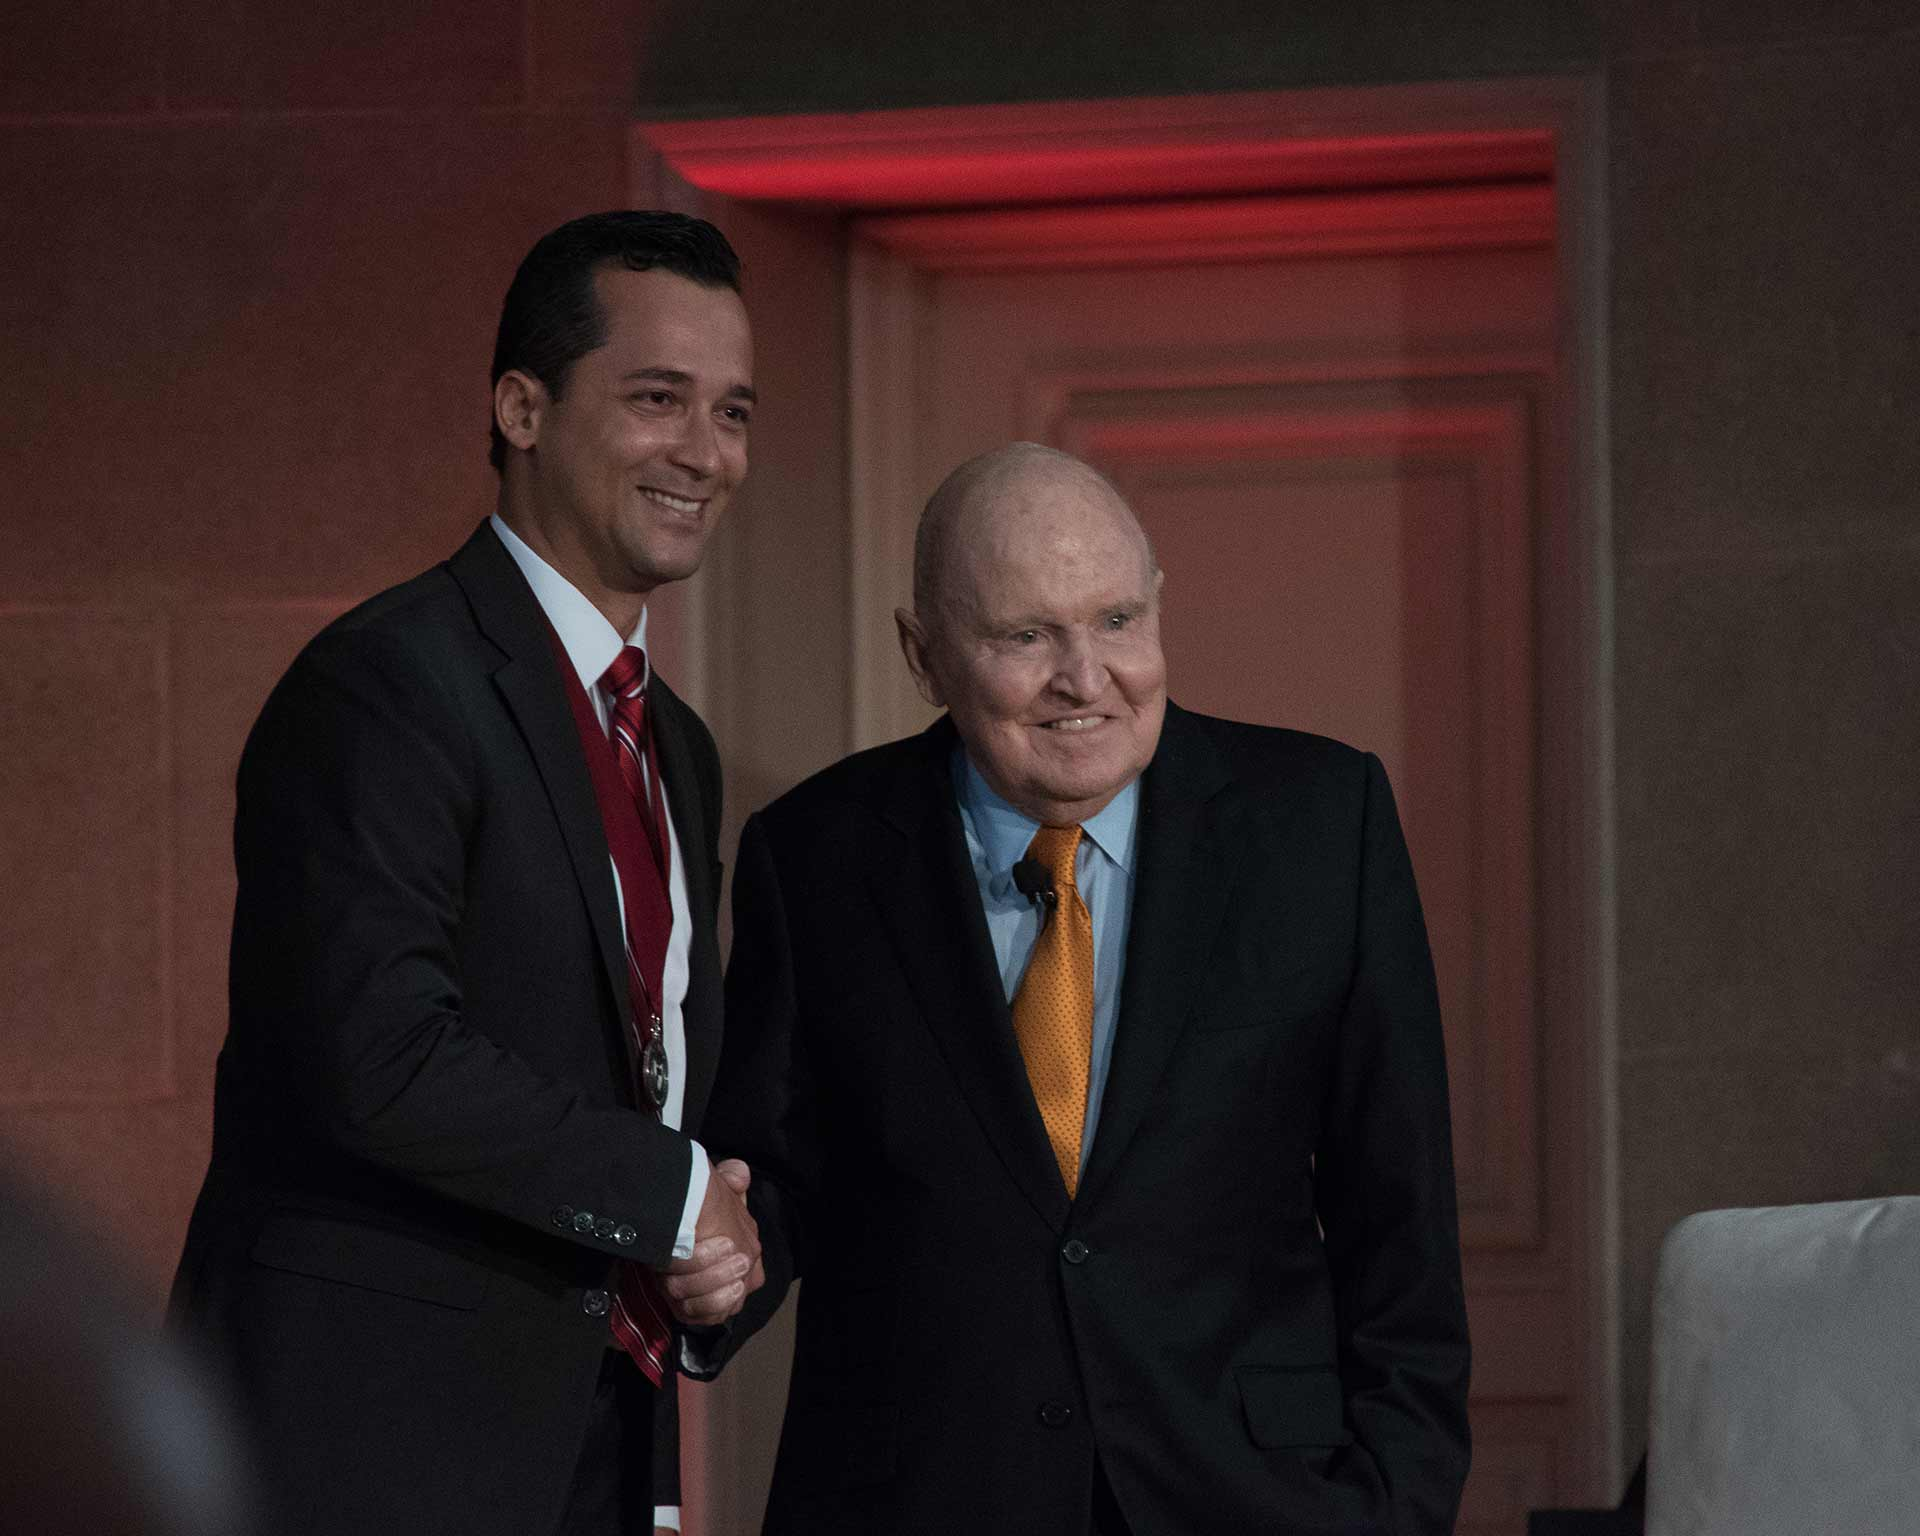 Luis Ferreira and Jack Welch